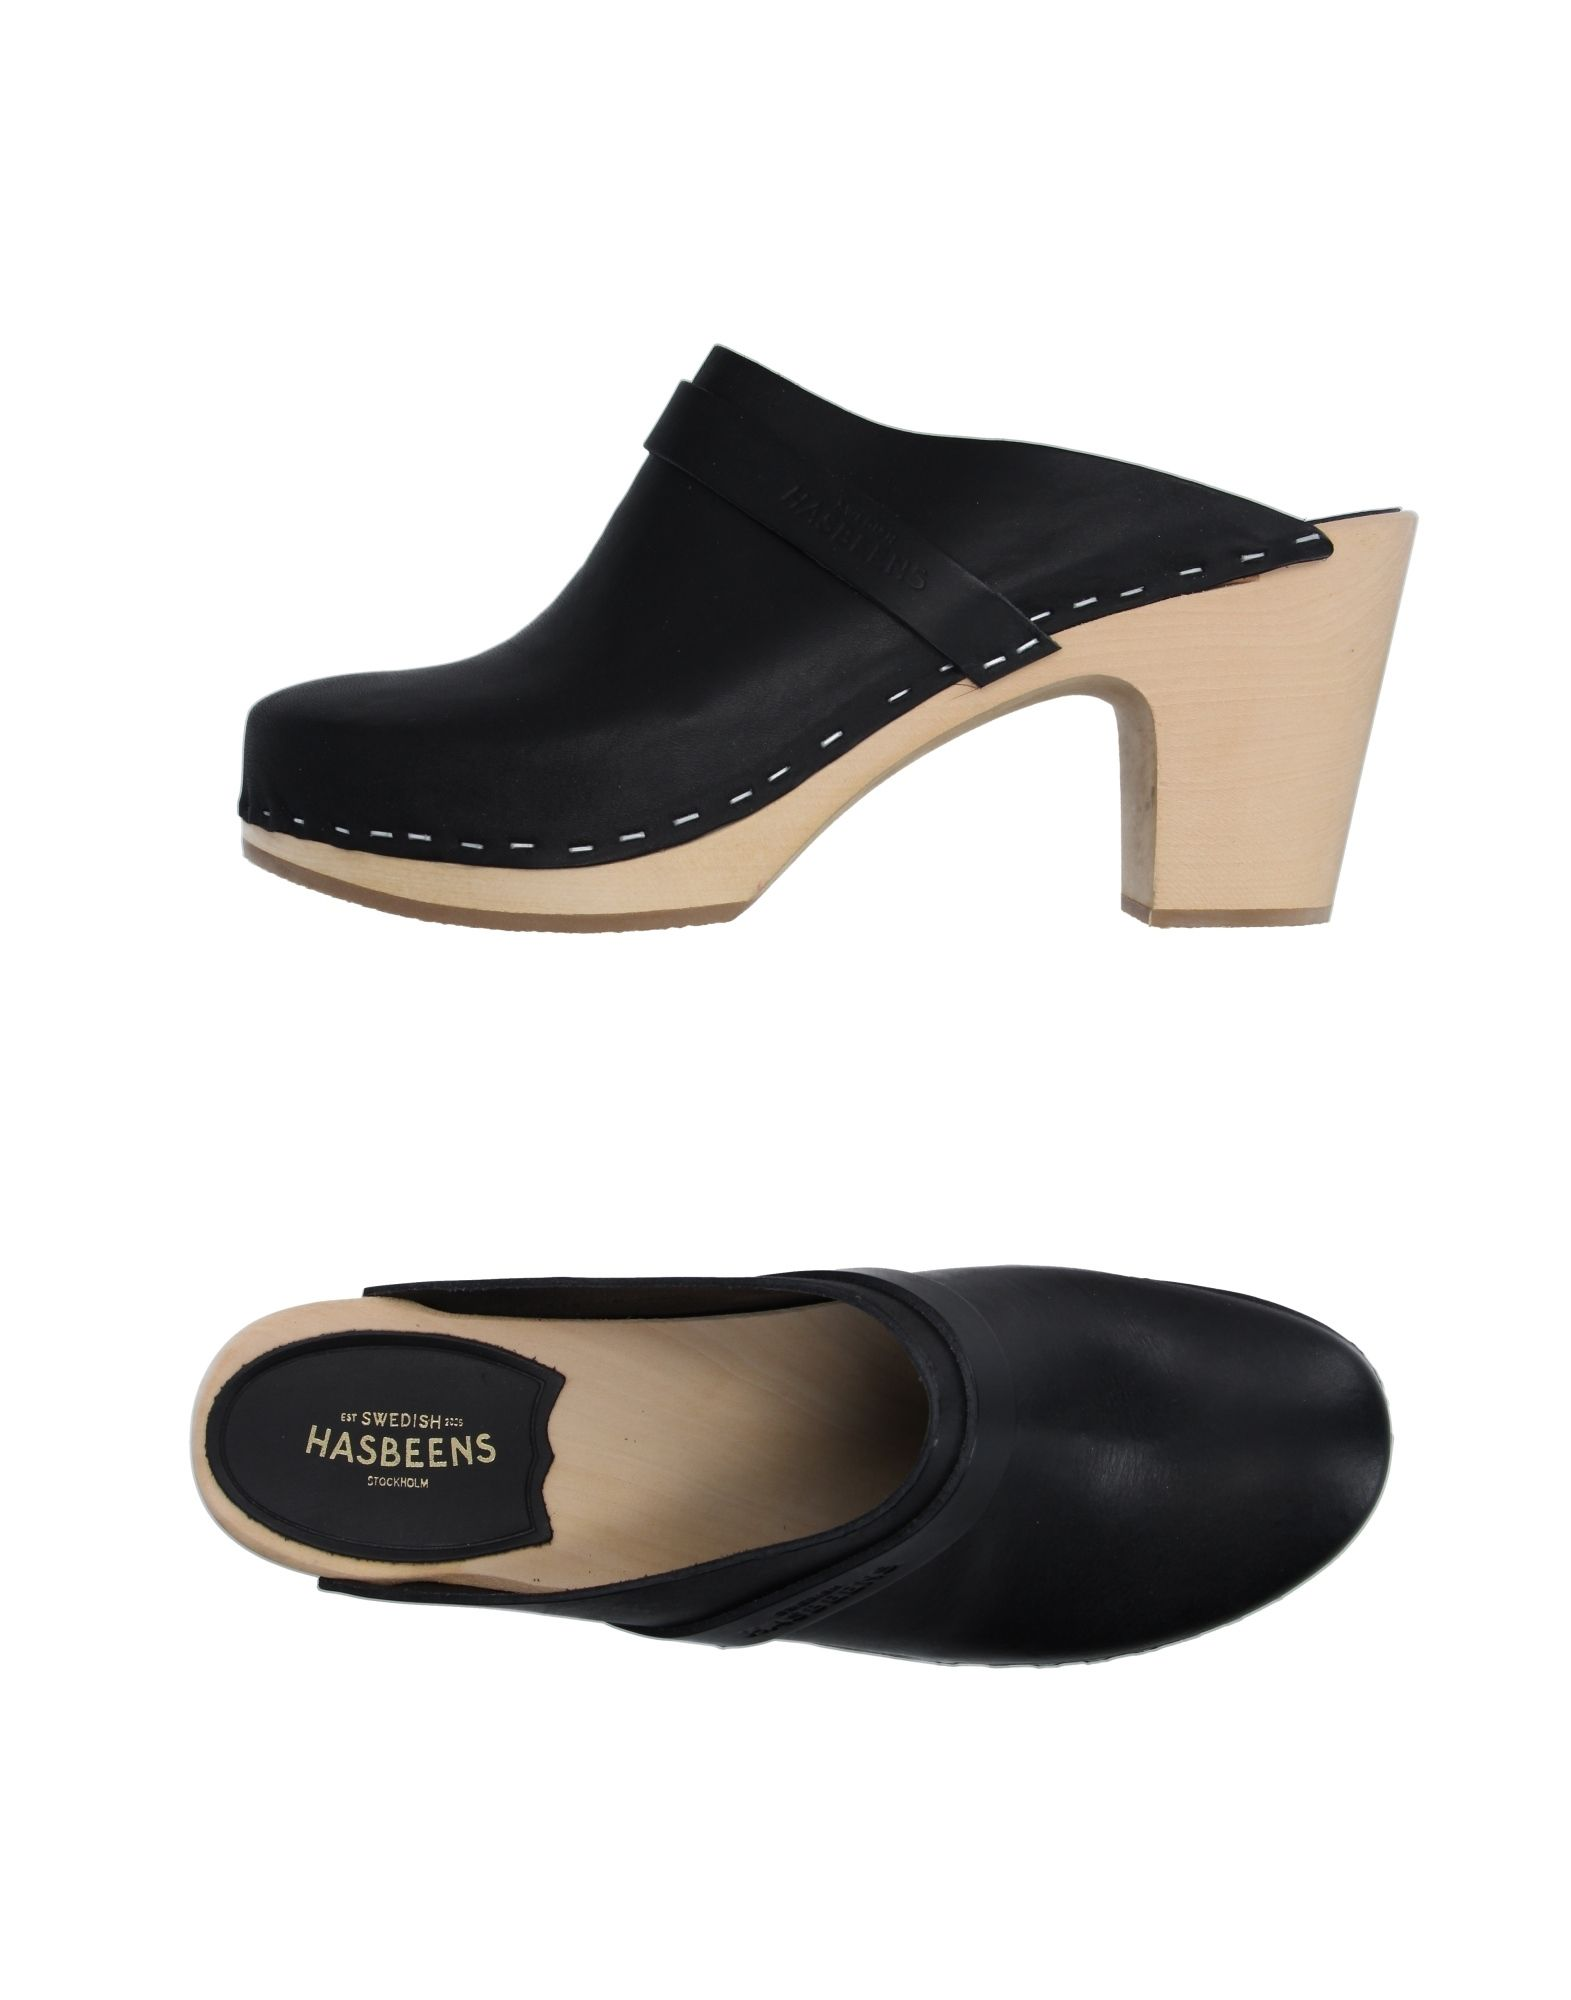 SWEDISH HASBEENS Mules in Black